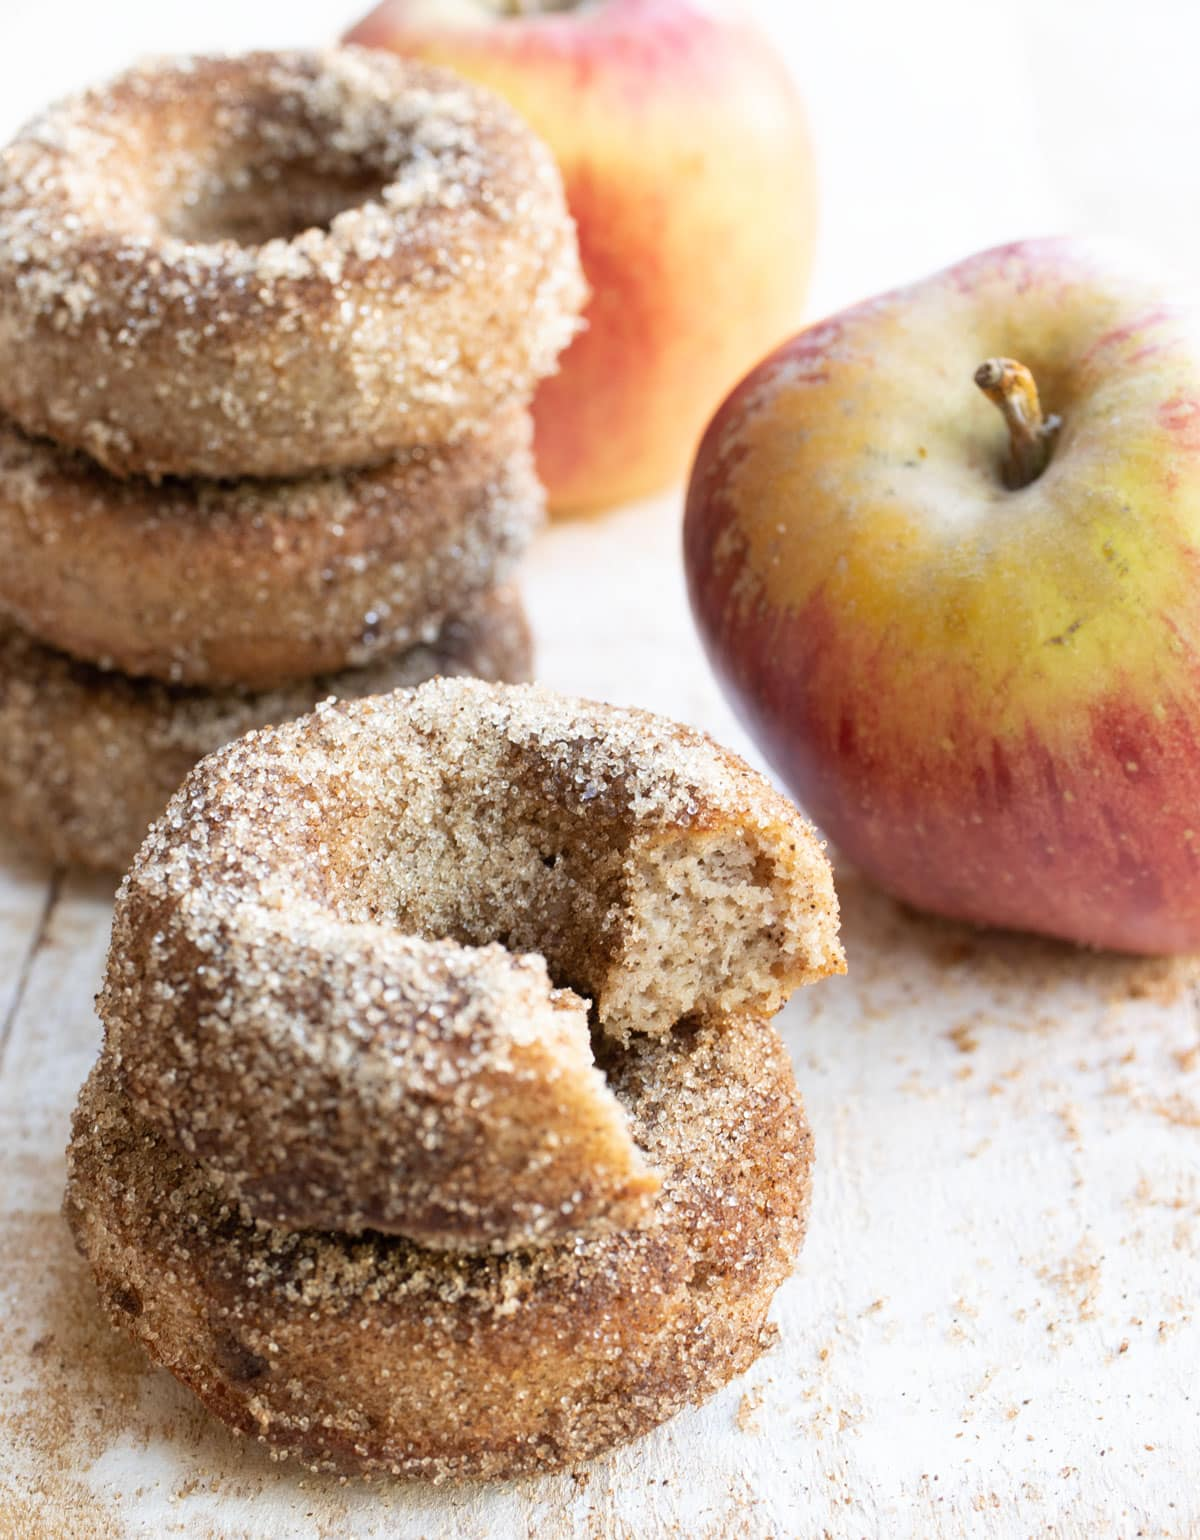 stacked donuts, one is bitten into and apples in the background